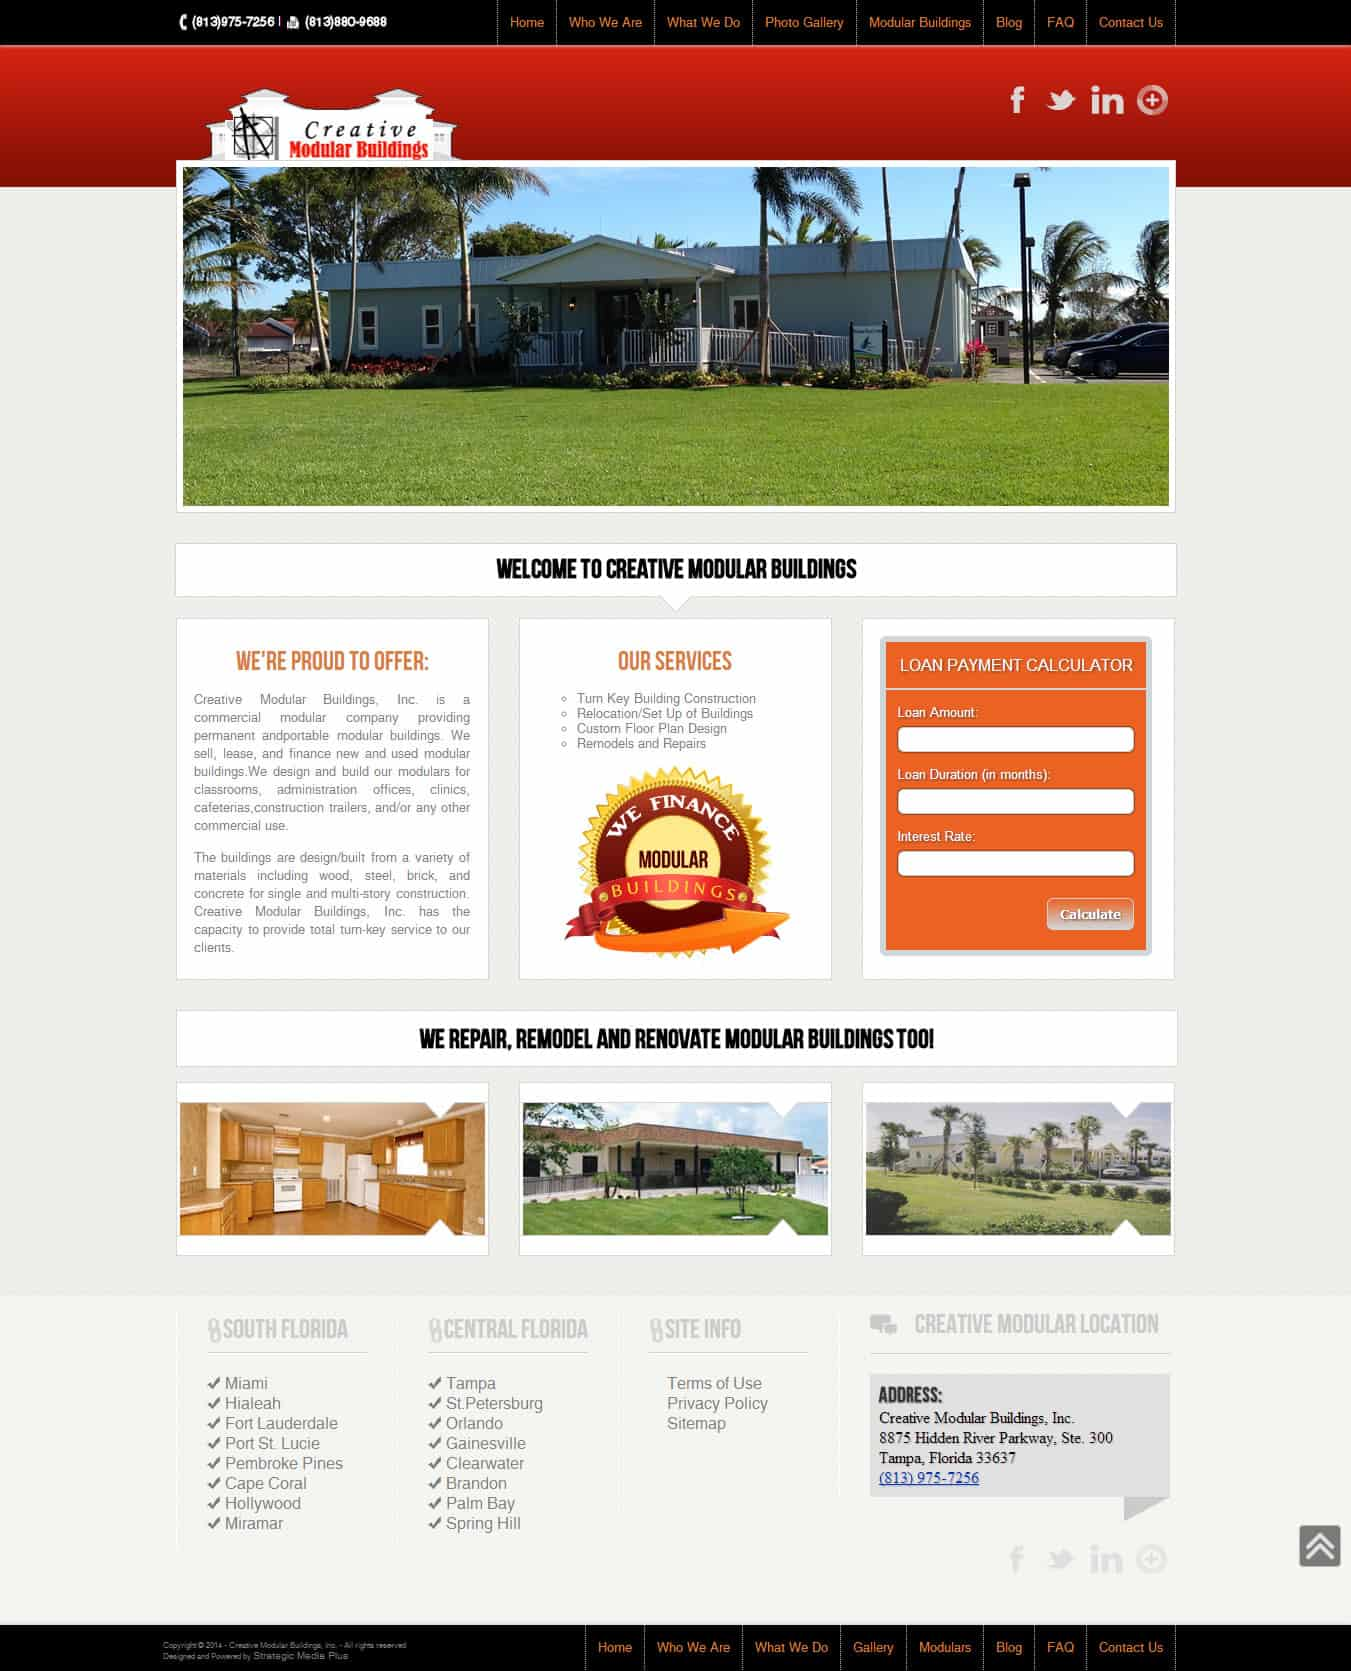 Need a website like CreativeModular.com? Strategic Media Plus specializes in SEO Websites, Local SEO, Social Media, Email Marketing - Call (877) 855-5241